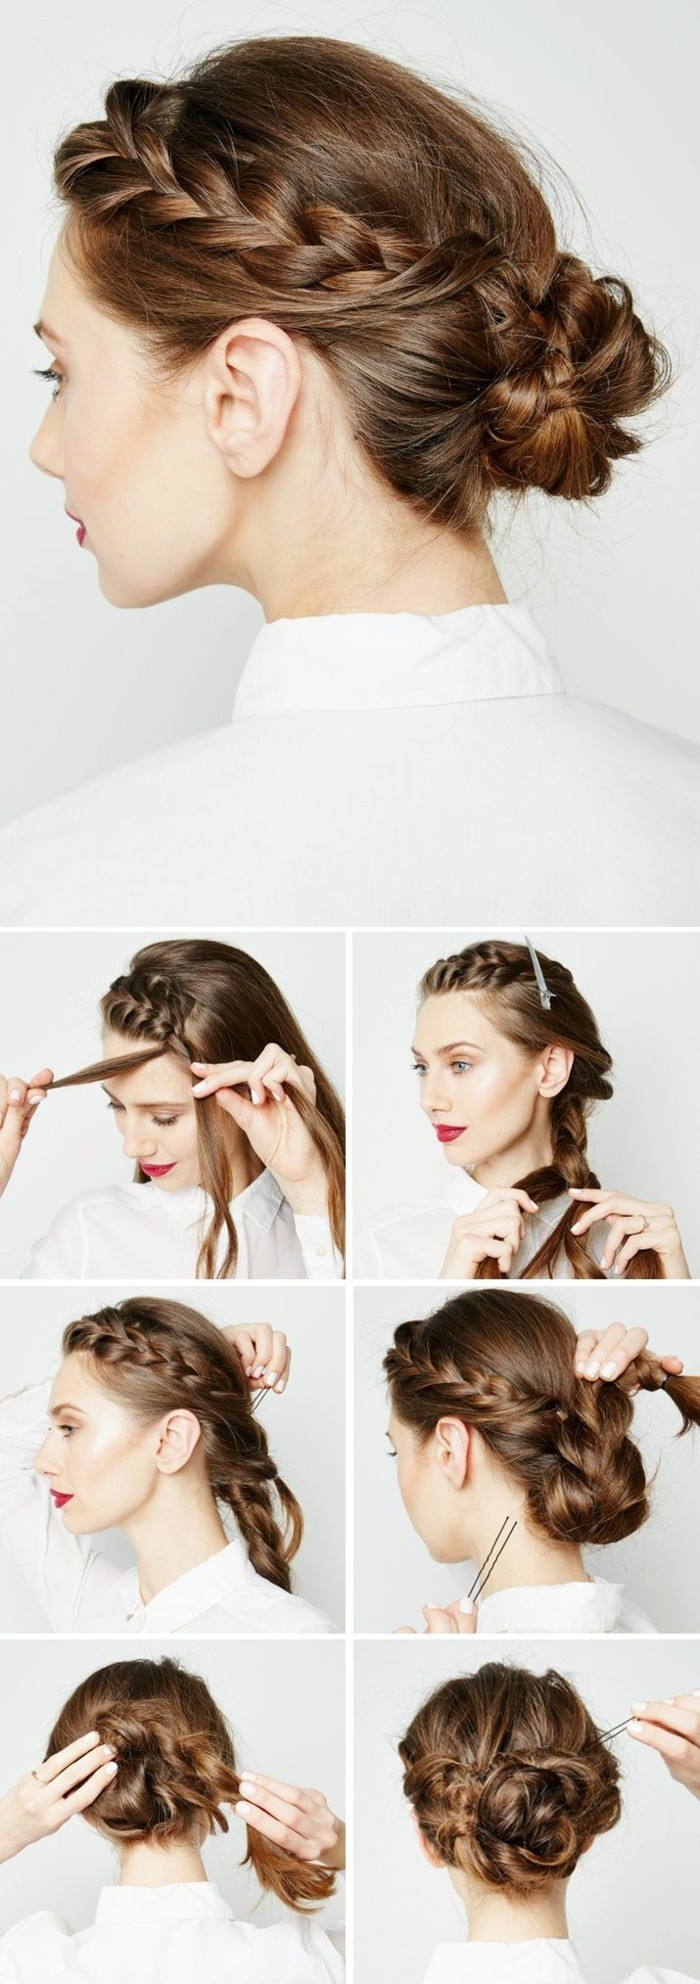 plait-updo-do it yourself-